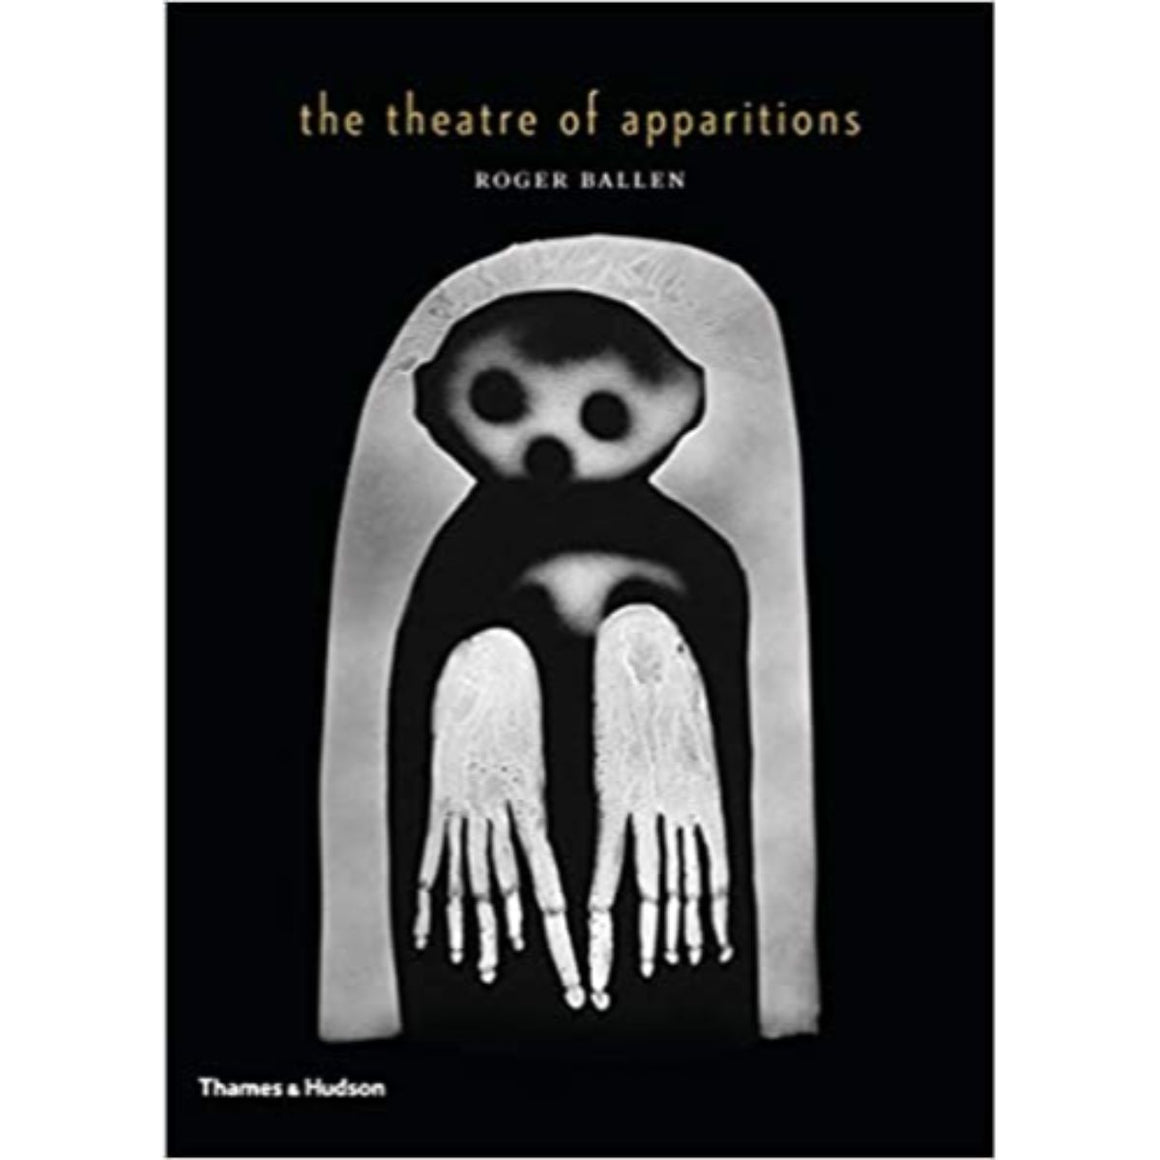 Book featuring cover art of The Theatre of Apparitions